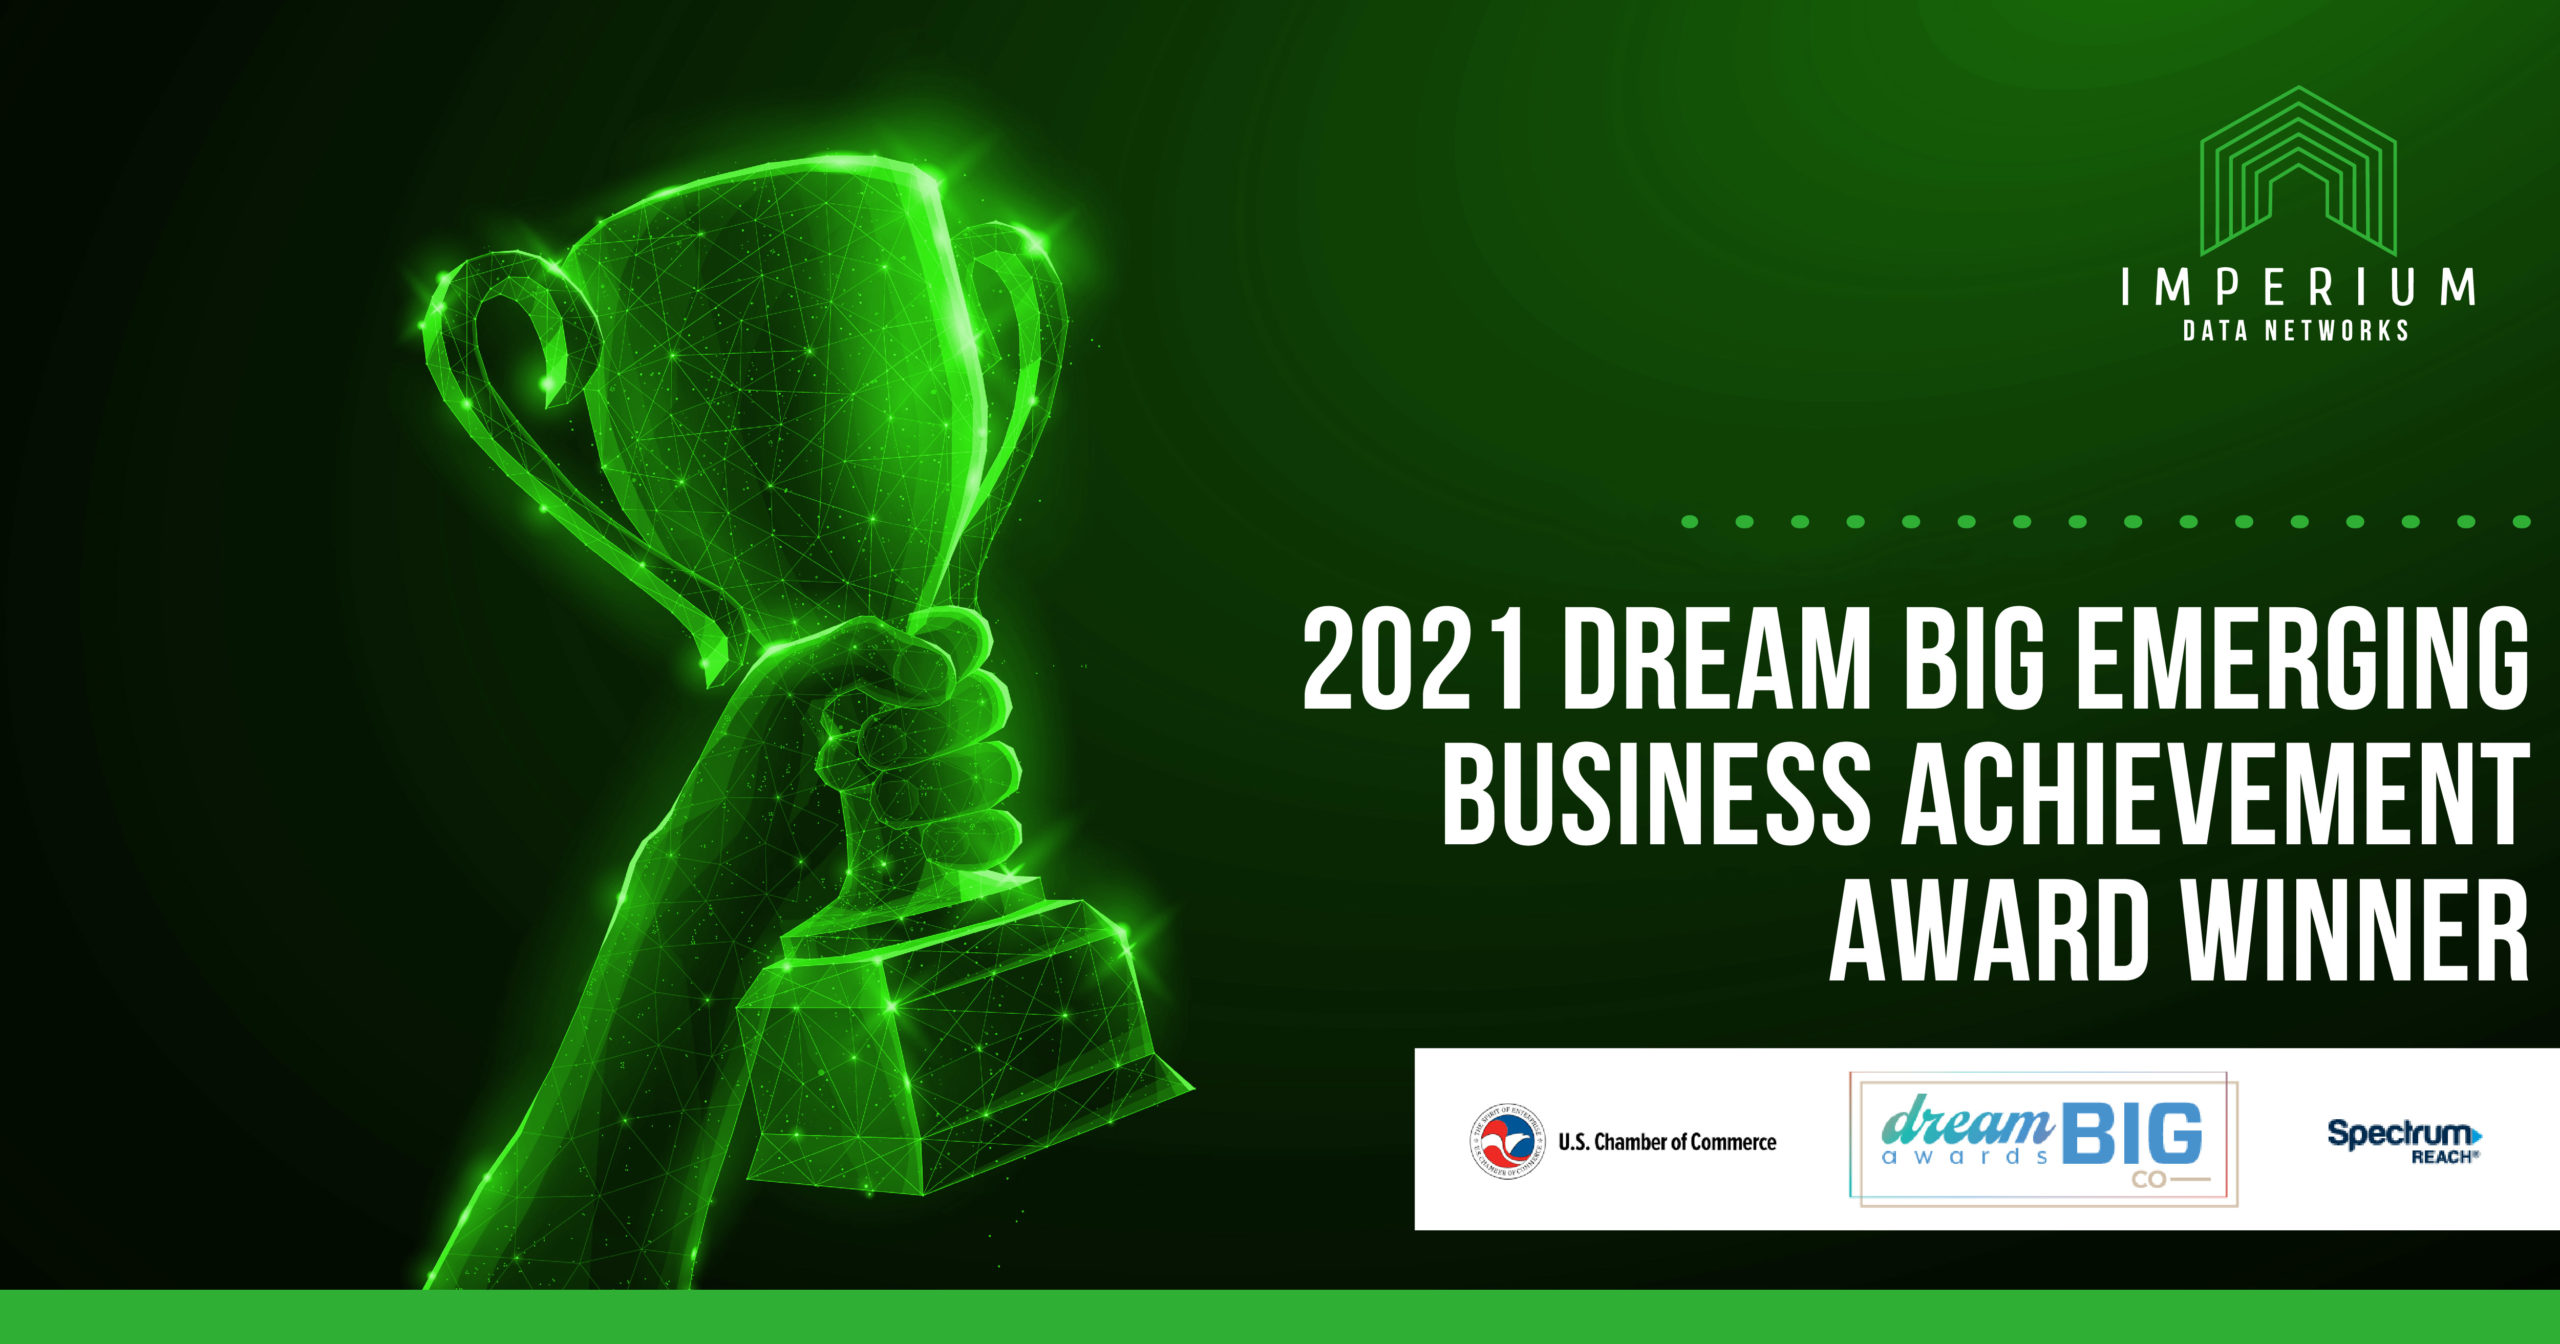 Imperium Data Networks honored by U.S. Chamber of Commerce as 2021 Dream Big Emerging Business Achievement Award Winner